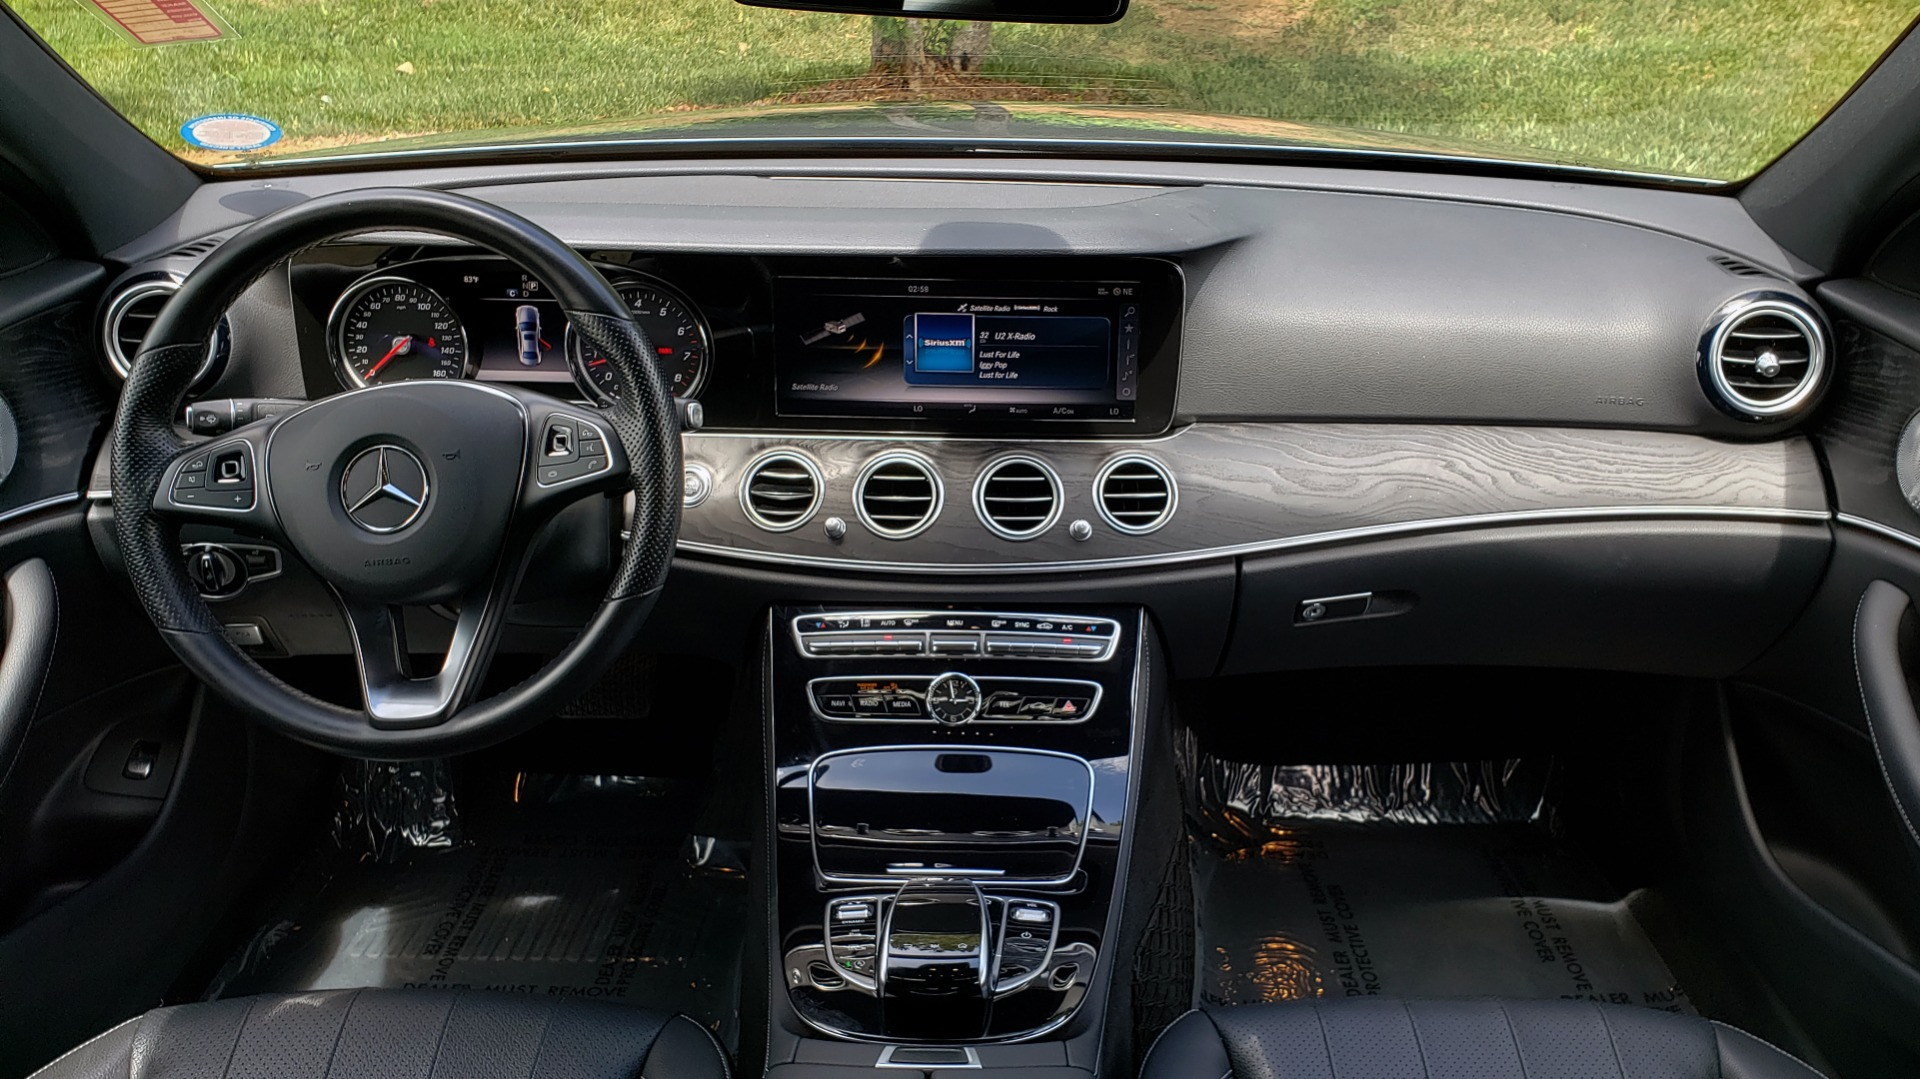 Used 2017 Mercedes-Benz E-Class E 300 4MATIC PREMIUM / SPORT / NAV / BURMESTER / HTD STS / REARVIEW for sale $30,495 at Formula Imports in Charlotte NC 28227 71